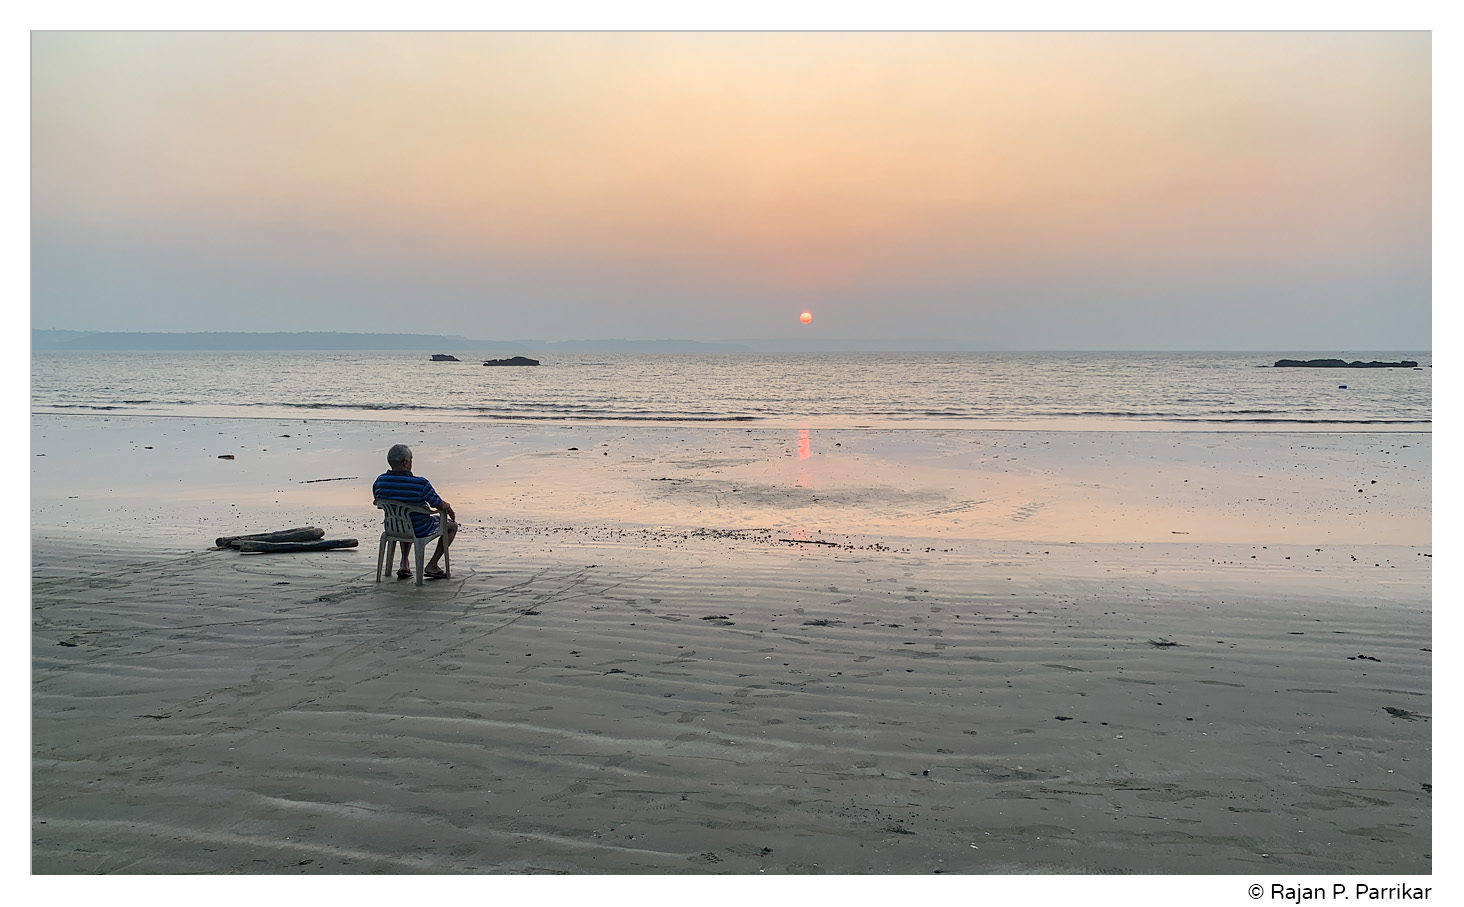 Sunset in Siridona, Goa